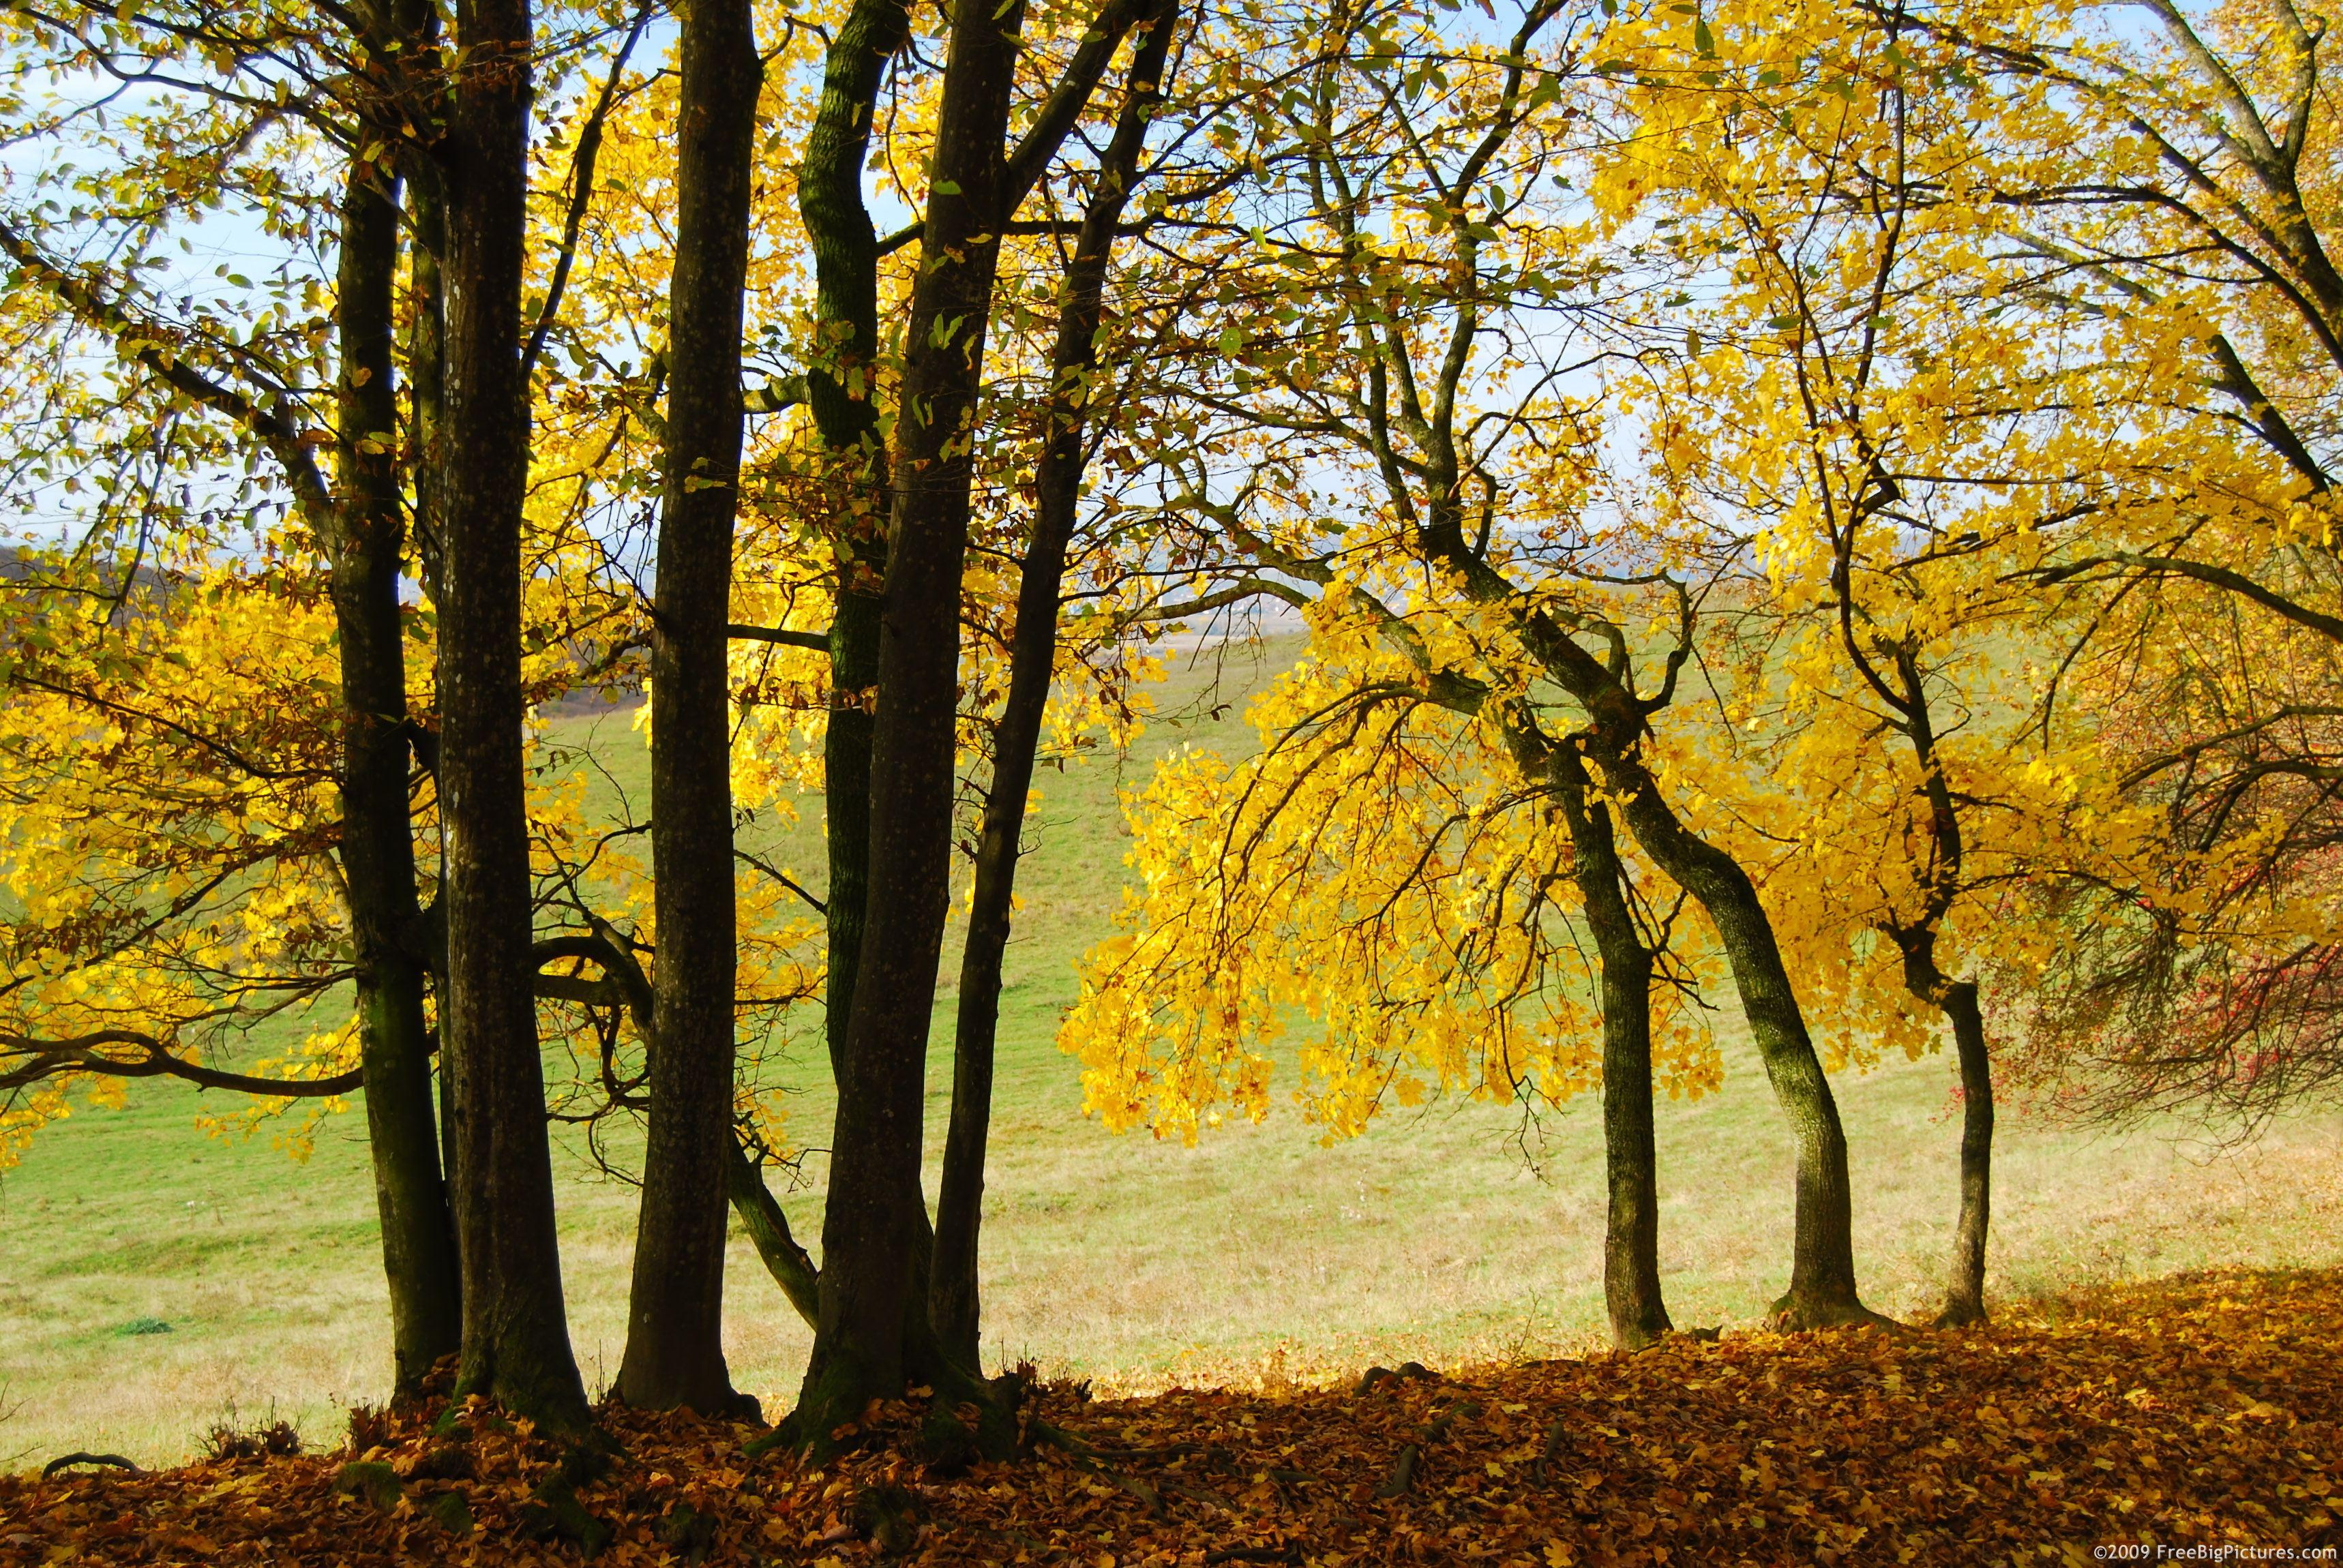 fall-yellow-trees.jpg (JPEG Image, 3436 × 2300 pixels) - Scaled (34%)